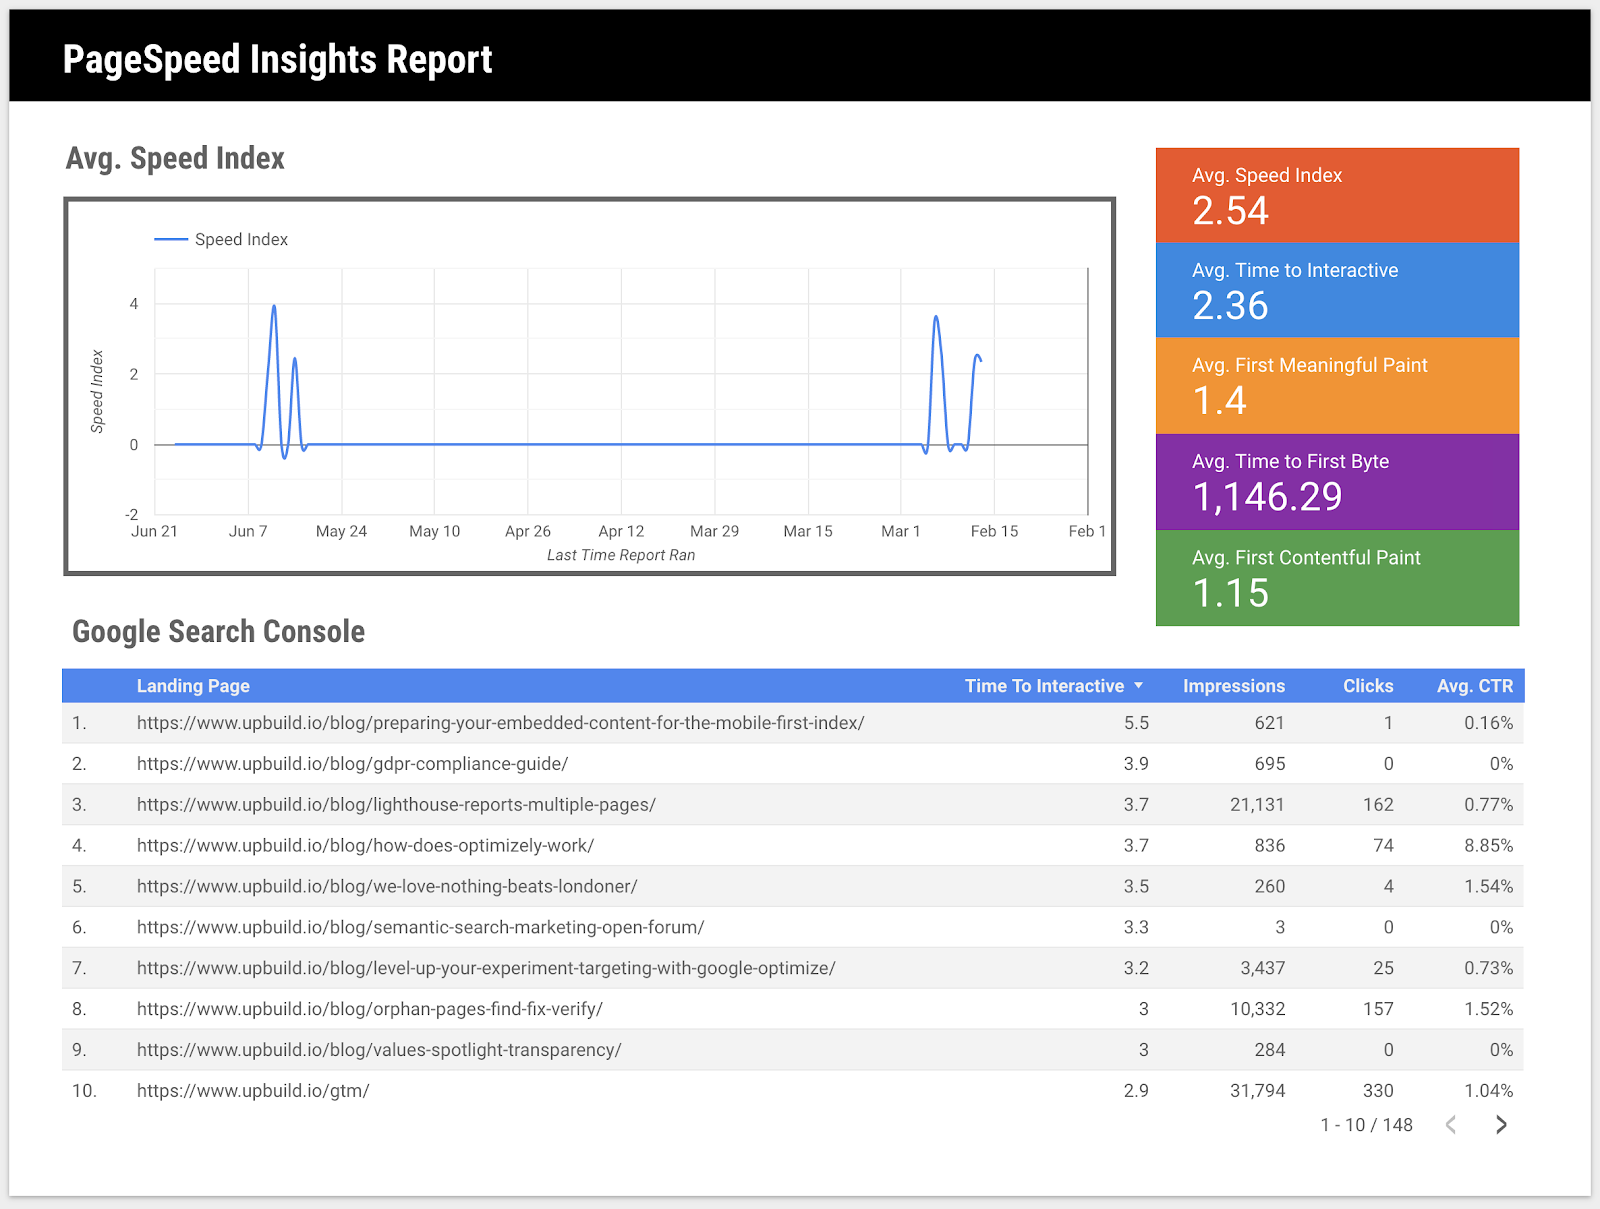 How to Automate Pagespeed Insights For Multiple URLs using Google Sheets 14